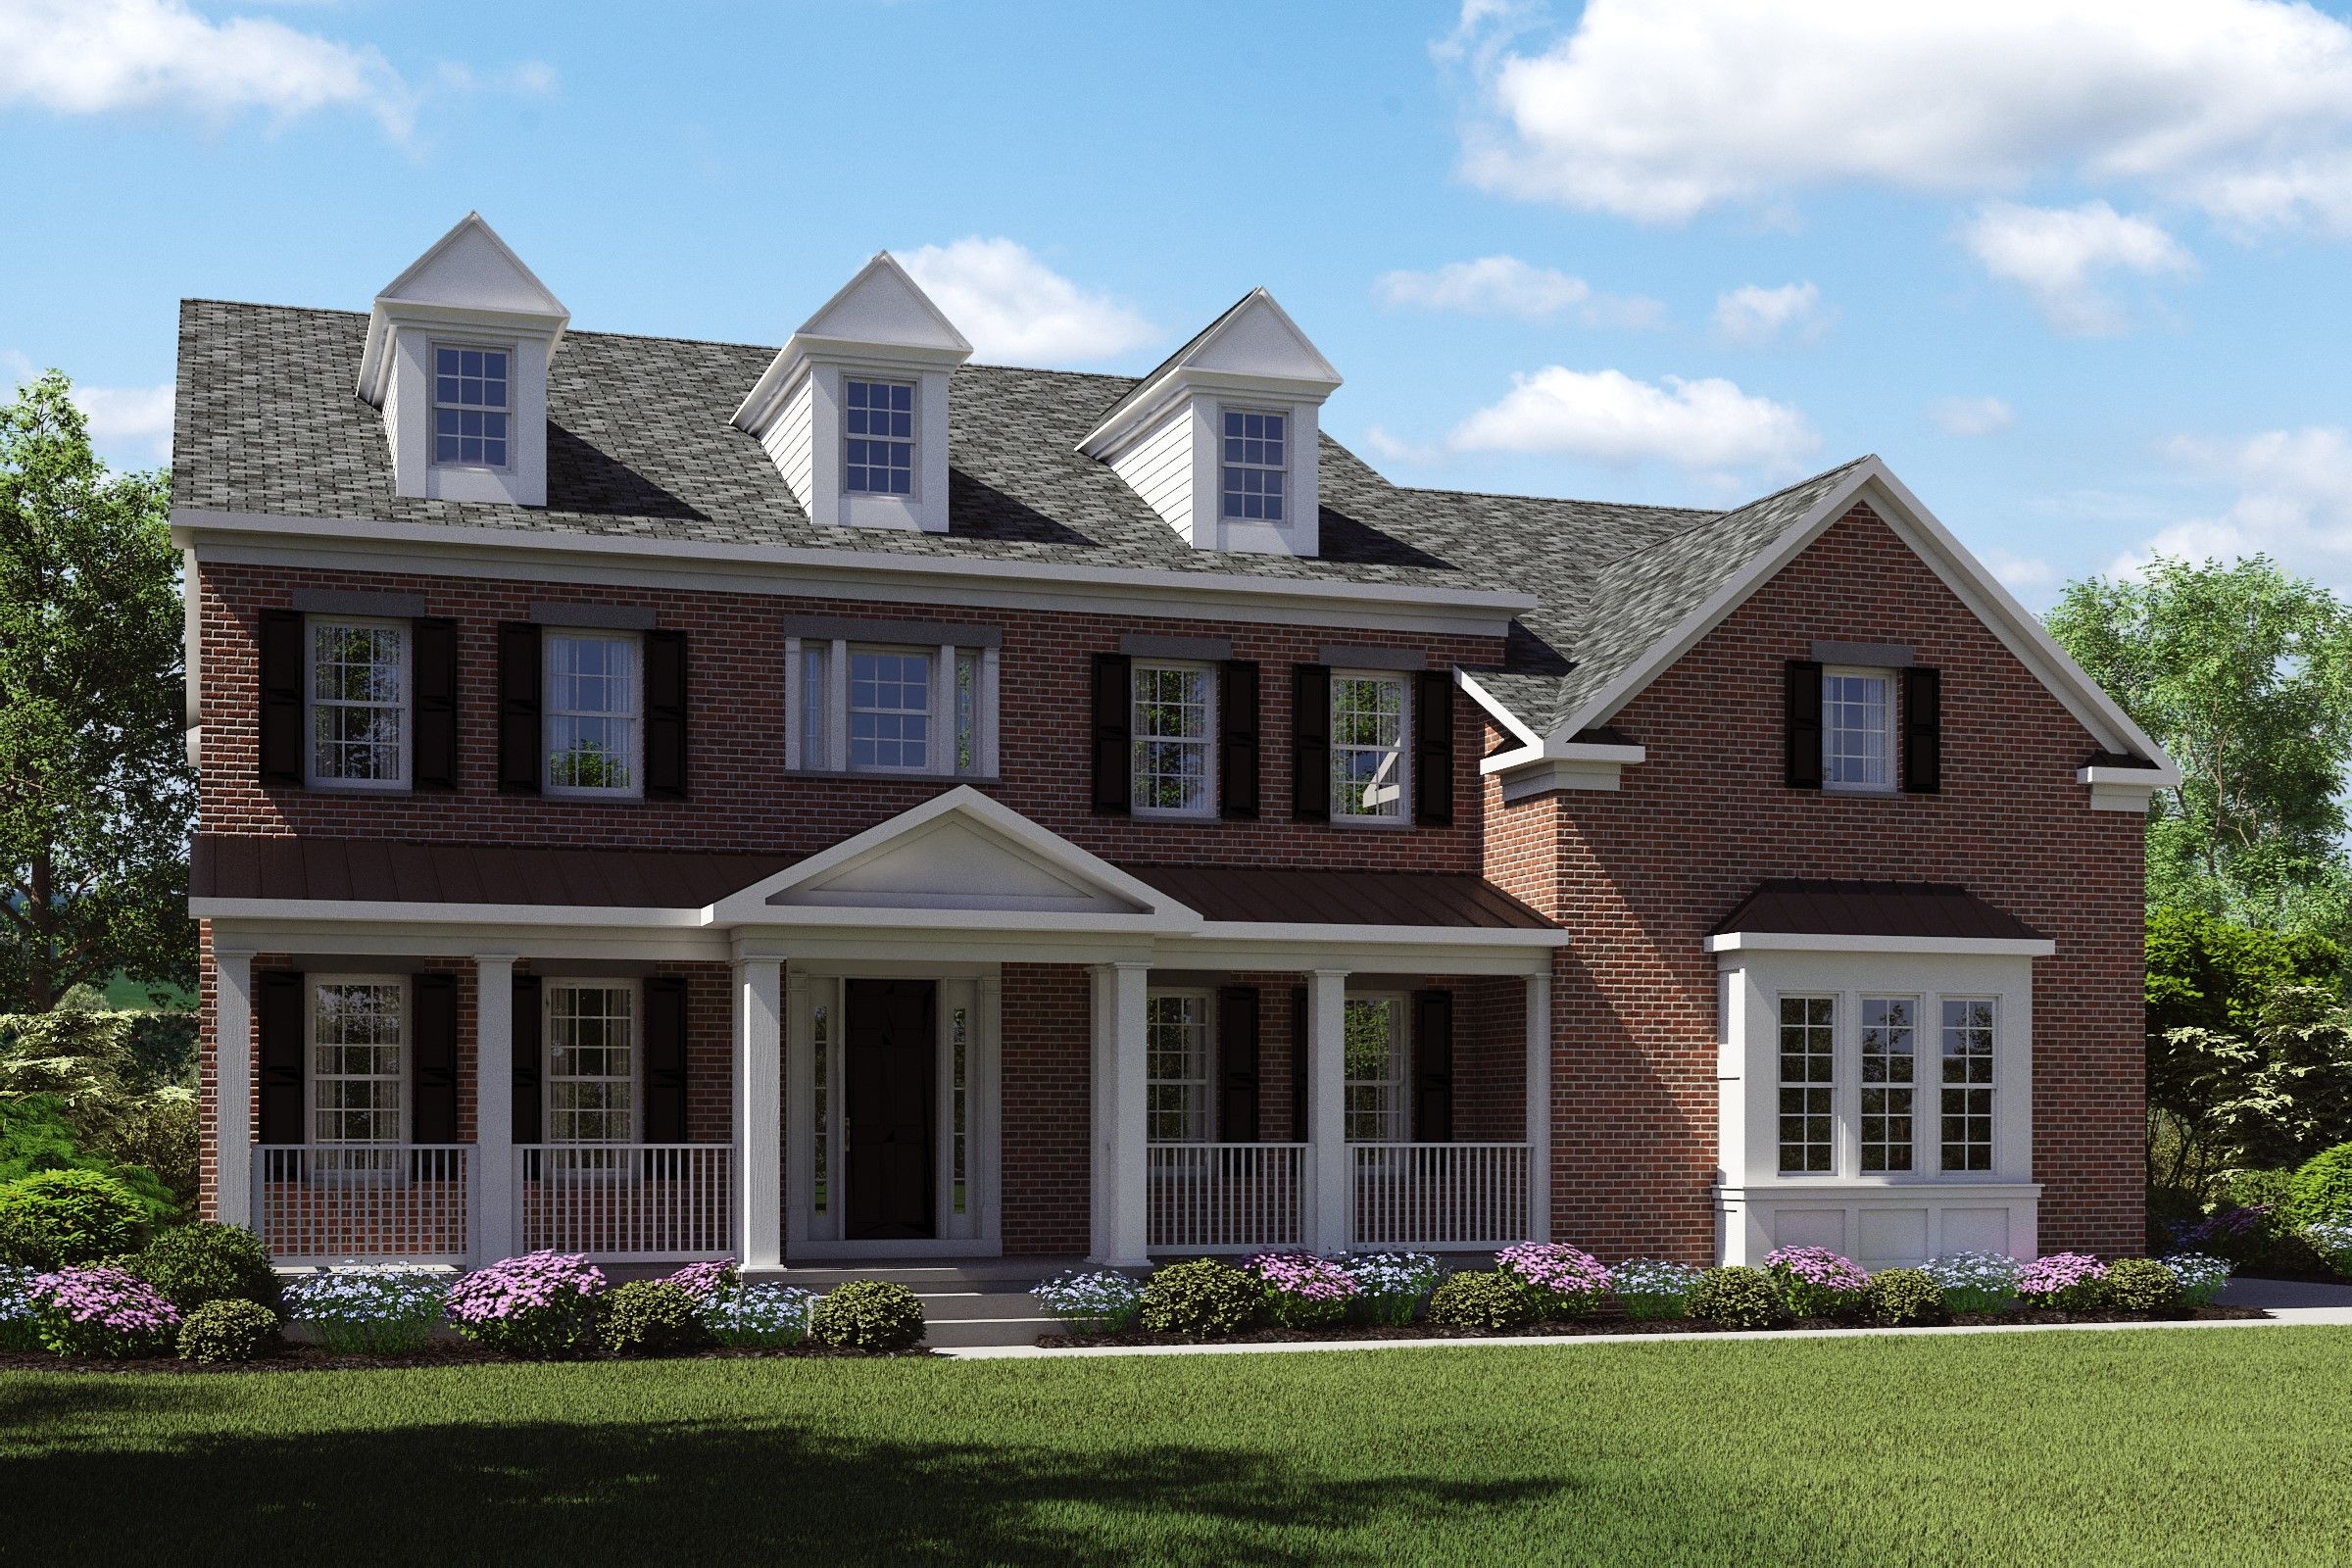 Single Family for Sale at Tanglewood Estates At Chapel Hill - Michelangelo 414 Kings Highway East Middletown, New Jersey 07748 United States